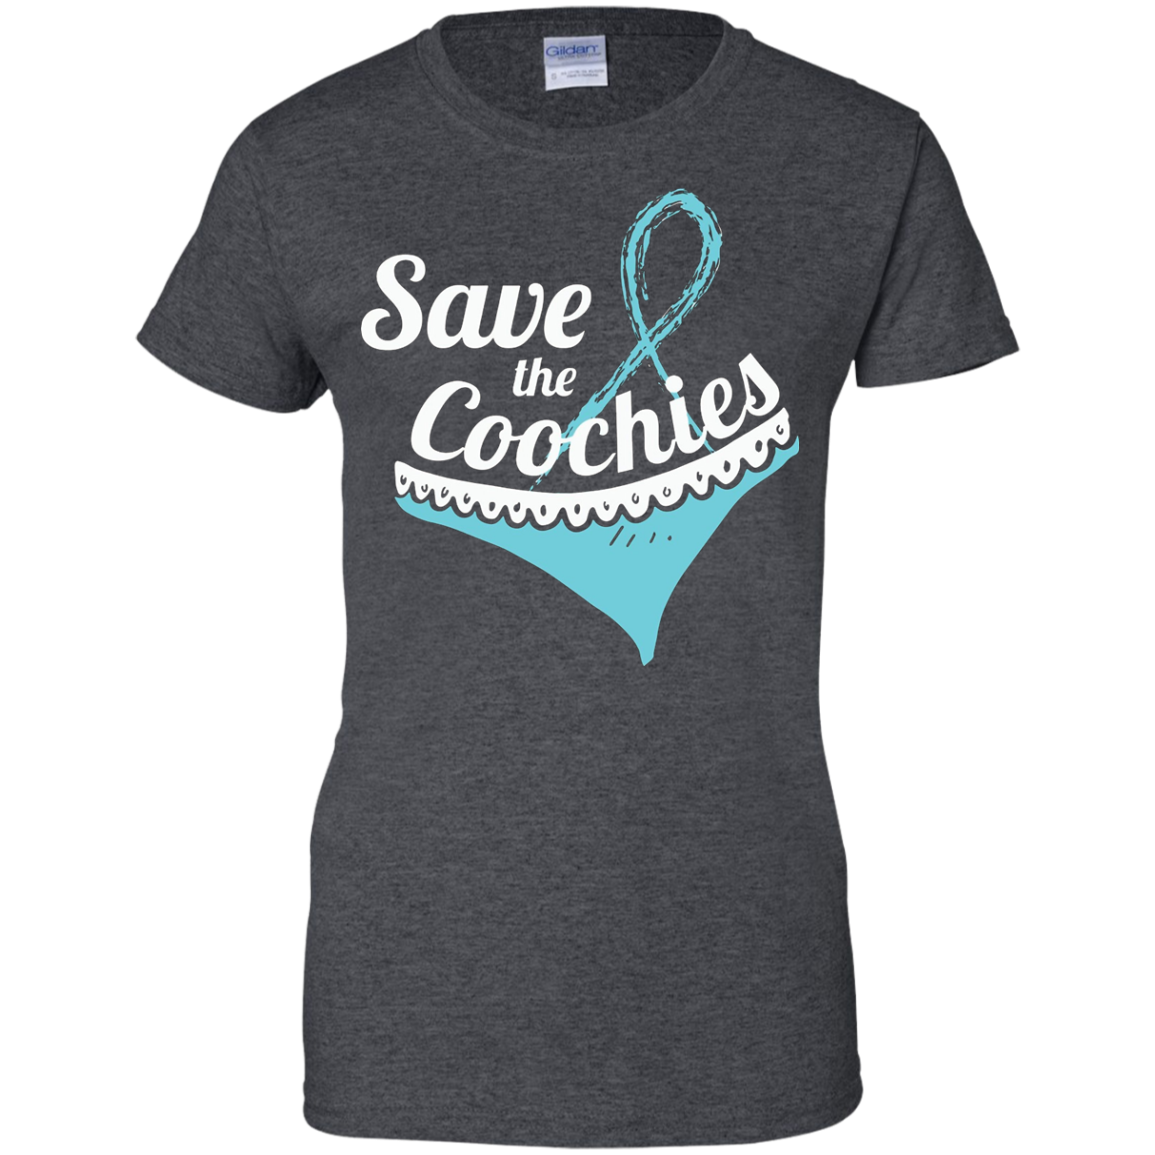 Cervical Cancer Awareness Shirt - Save The Coochies